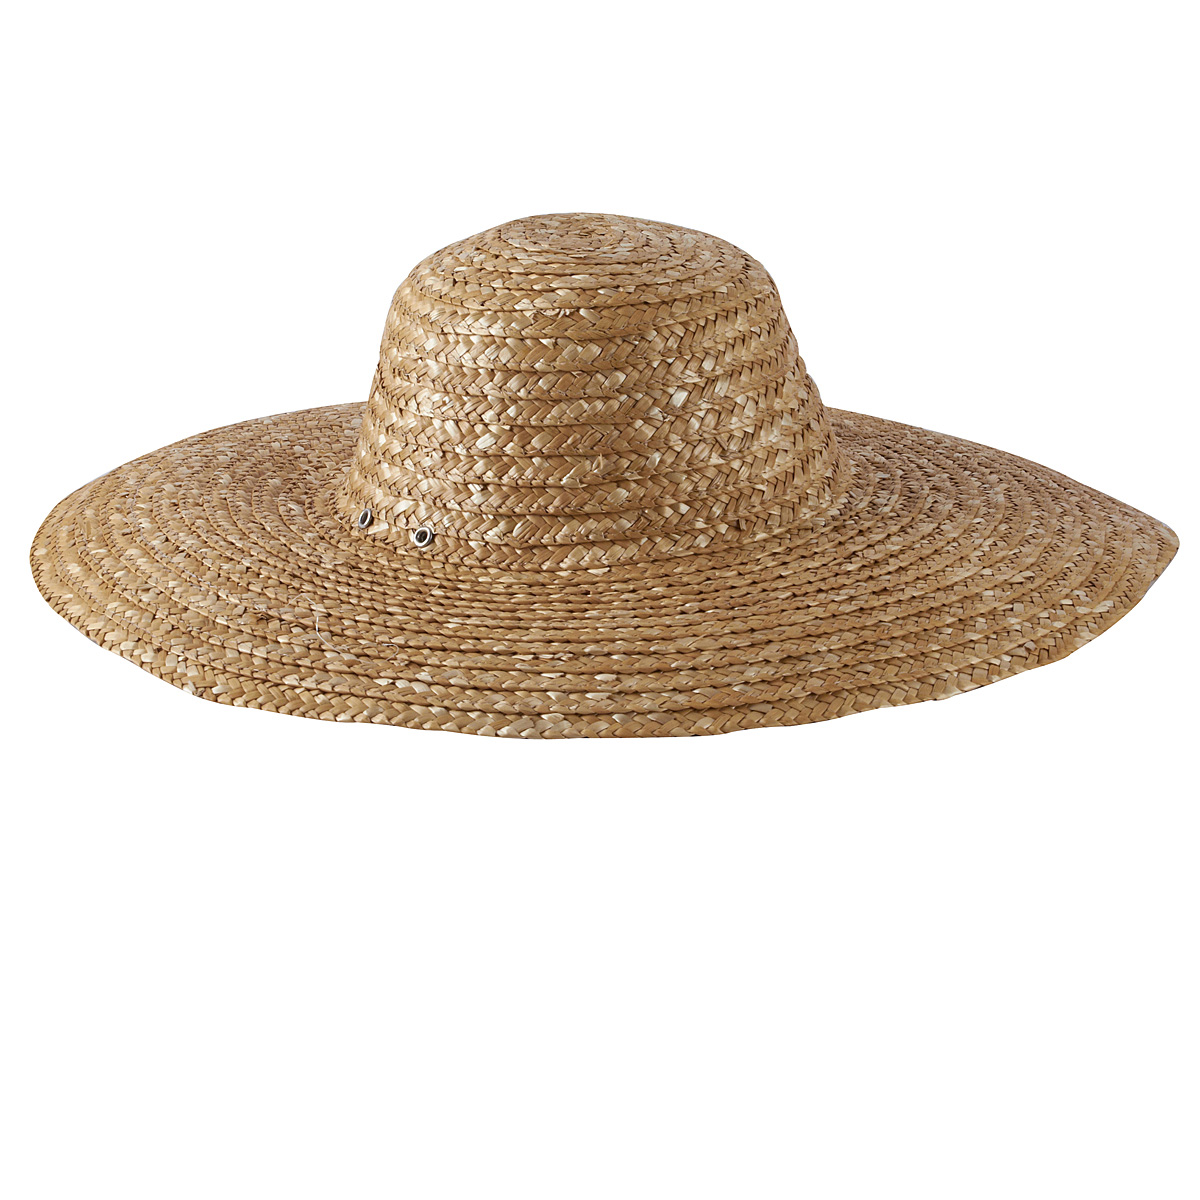 ashland™ straw hat KSLZNXQ